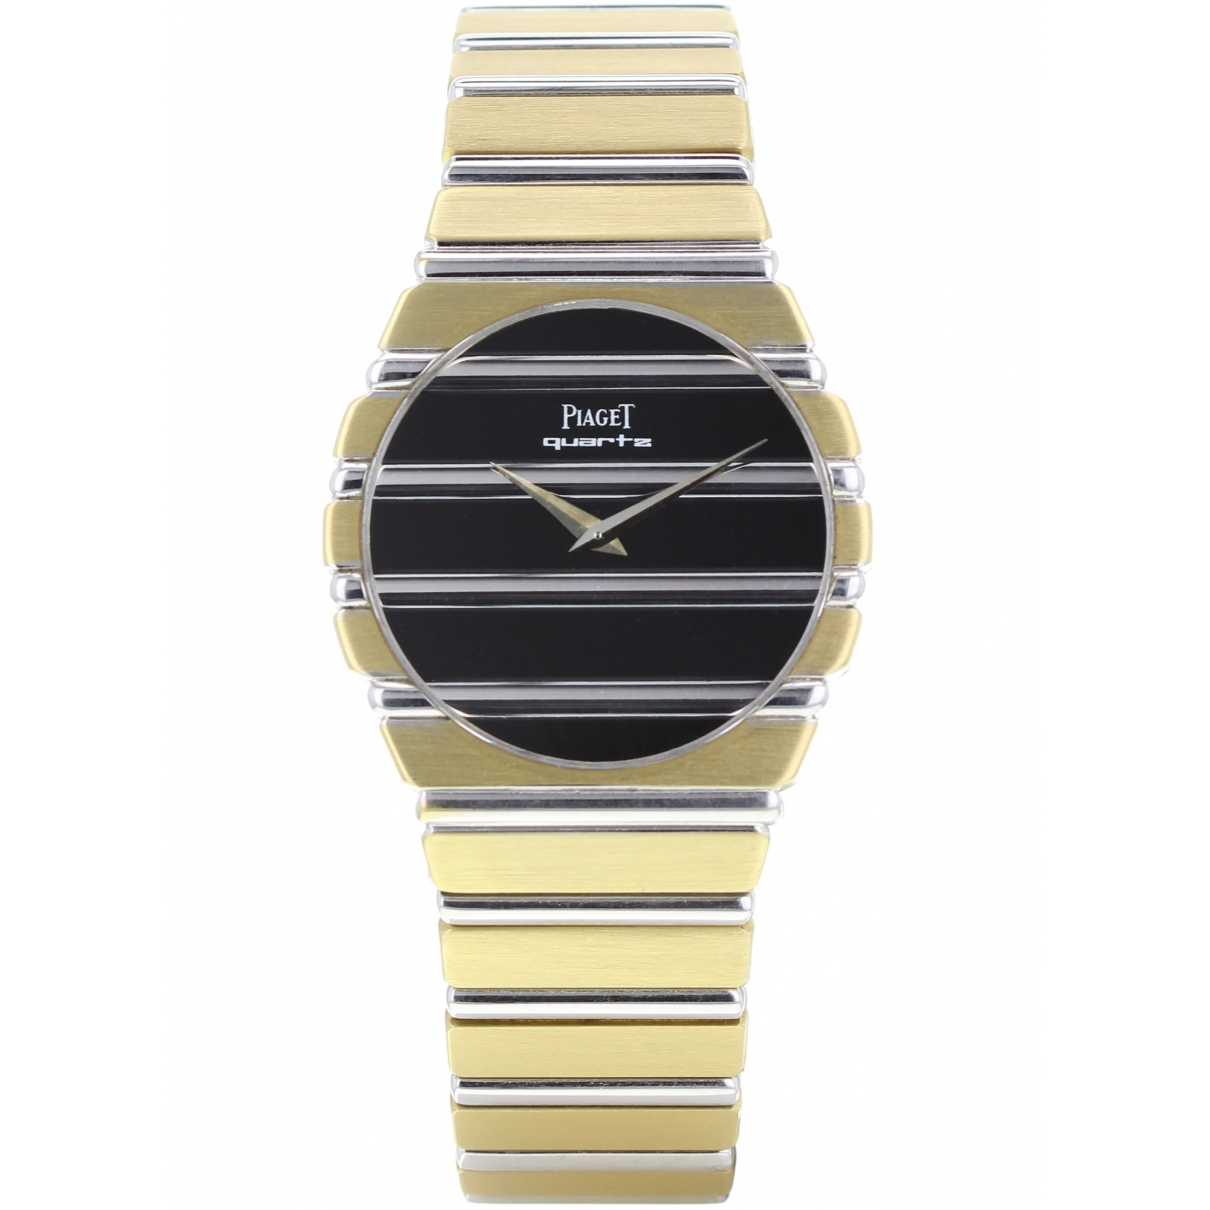 Piaget \N Black gold and steel watch for Men \N